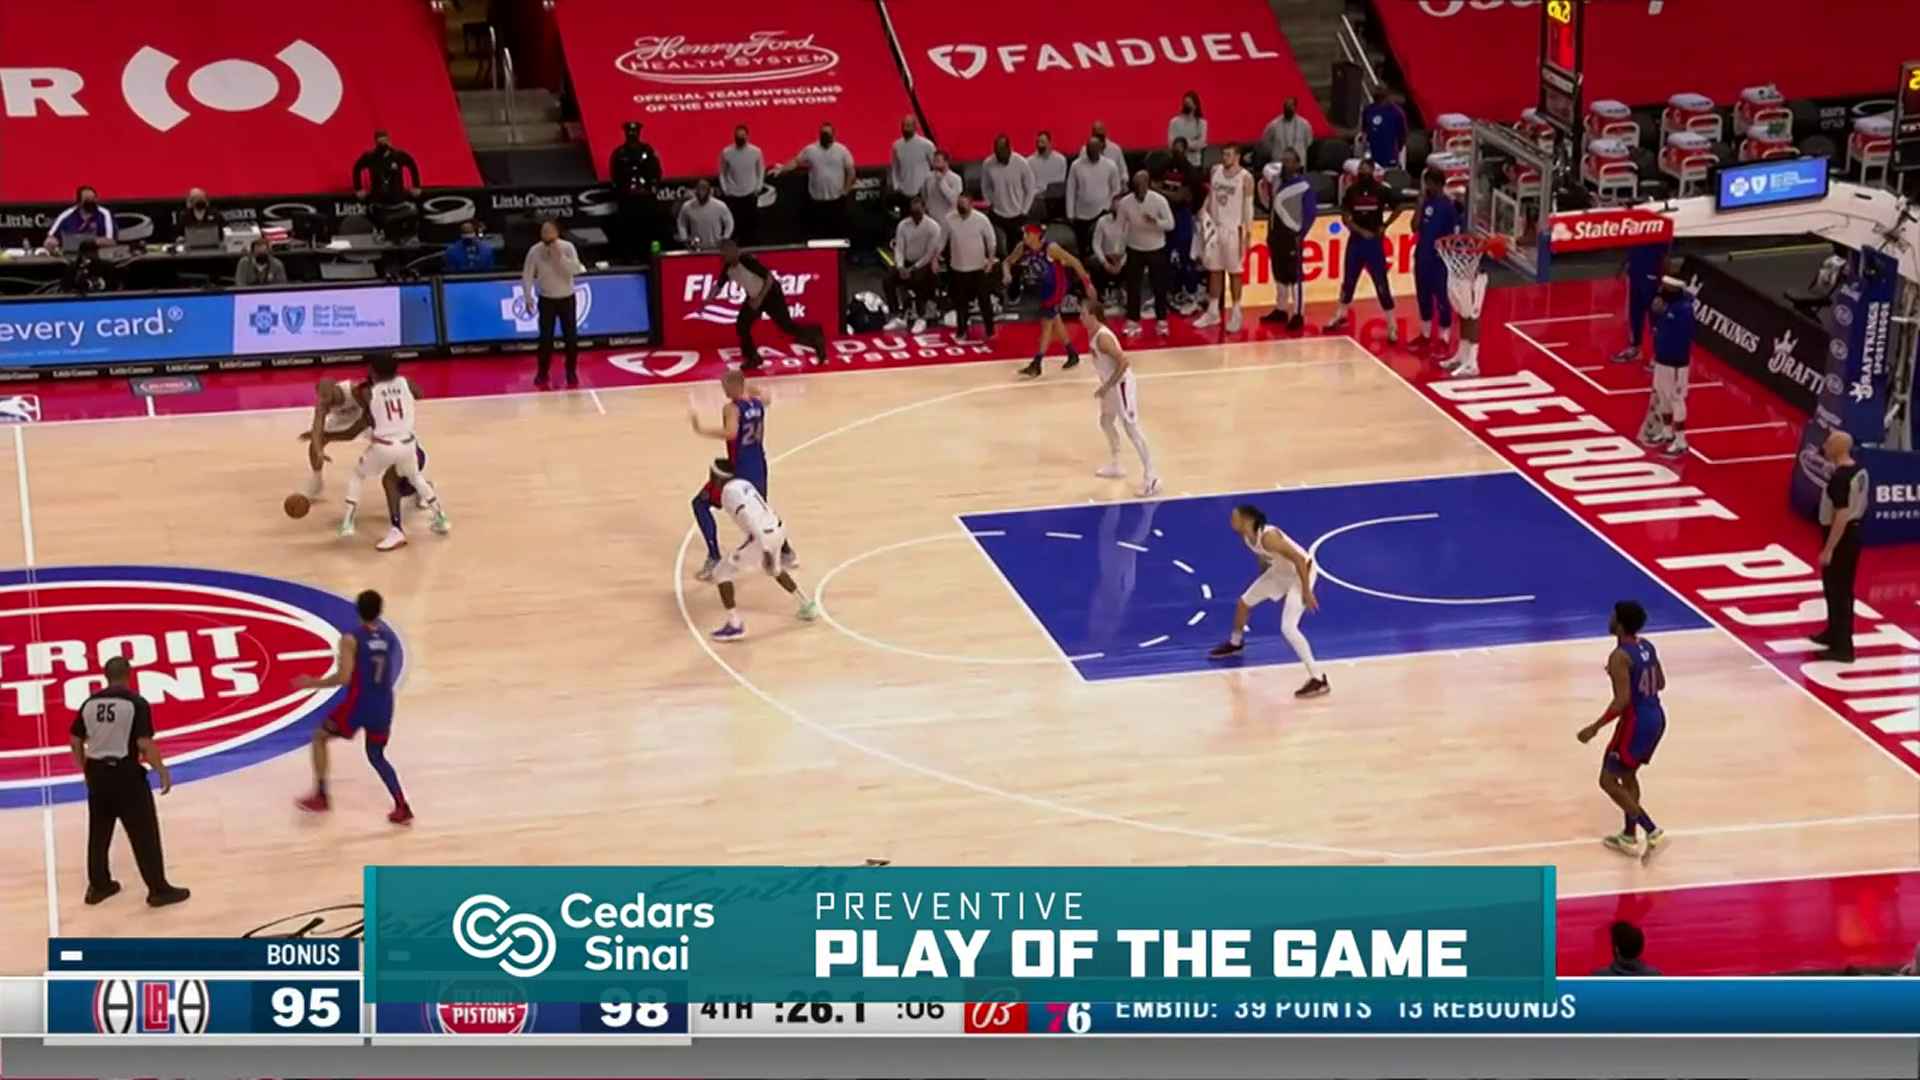 Cedars-Sinai Preventive Play of the Game | Clippers vs Pistons (4.14.21)